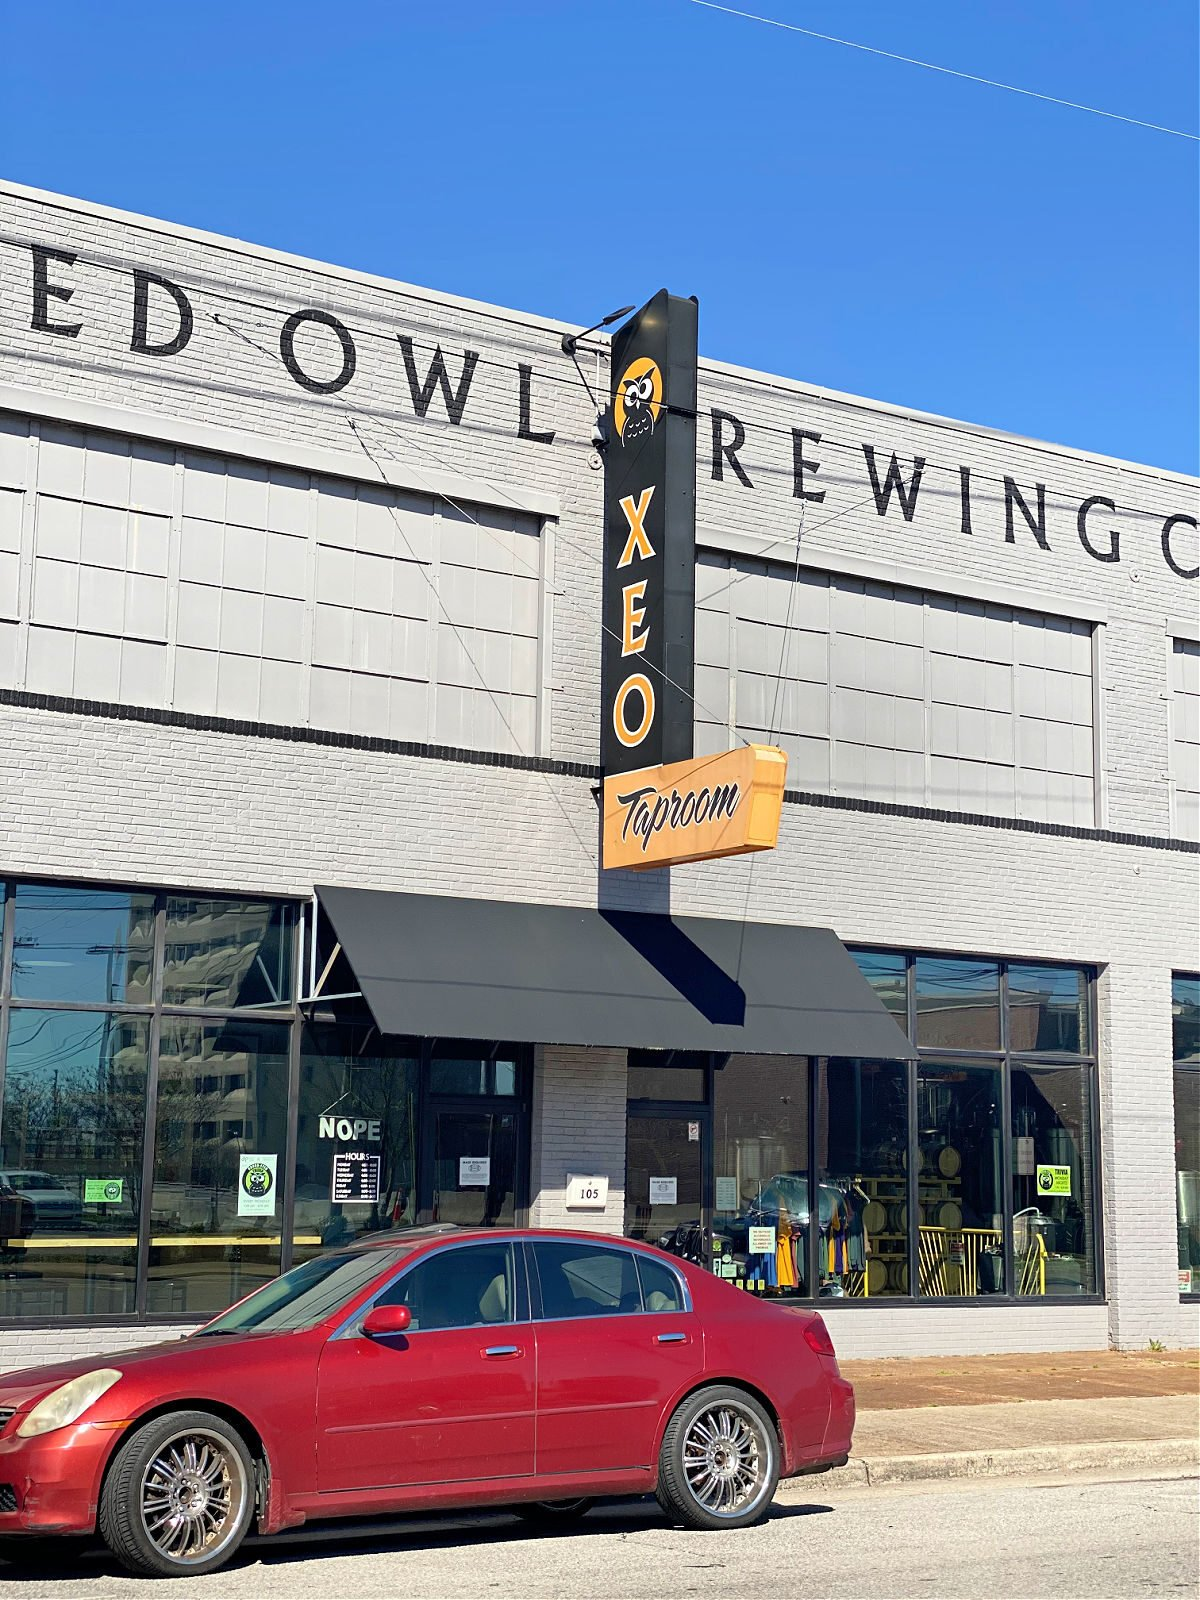 Cross-eyed Owl Brewing Company building.